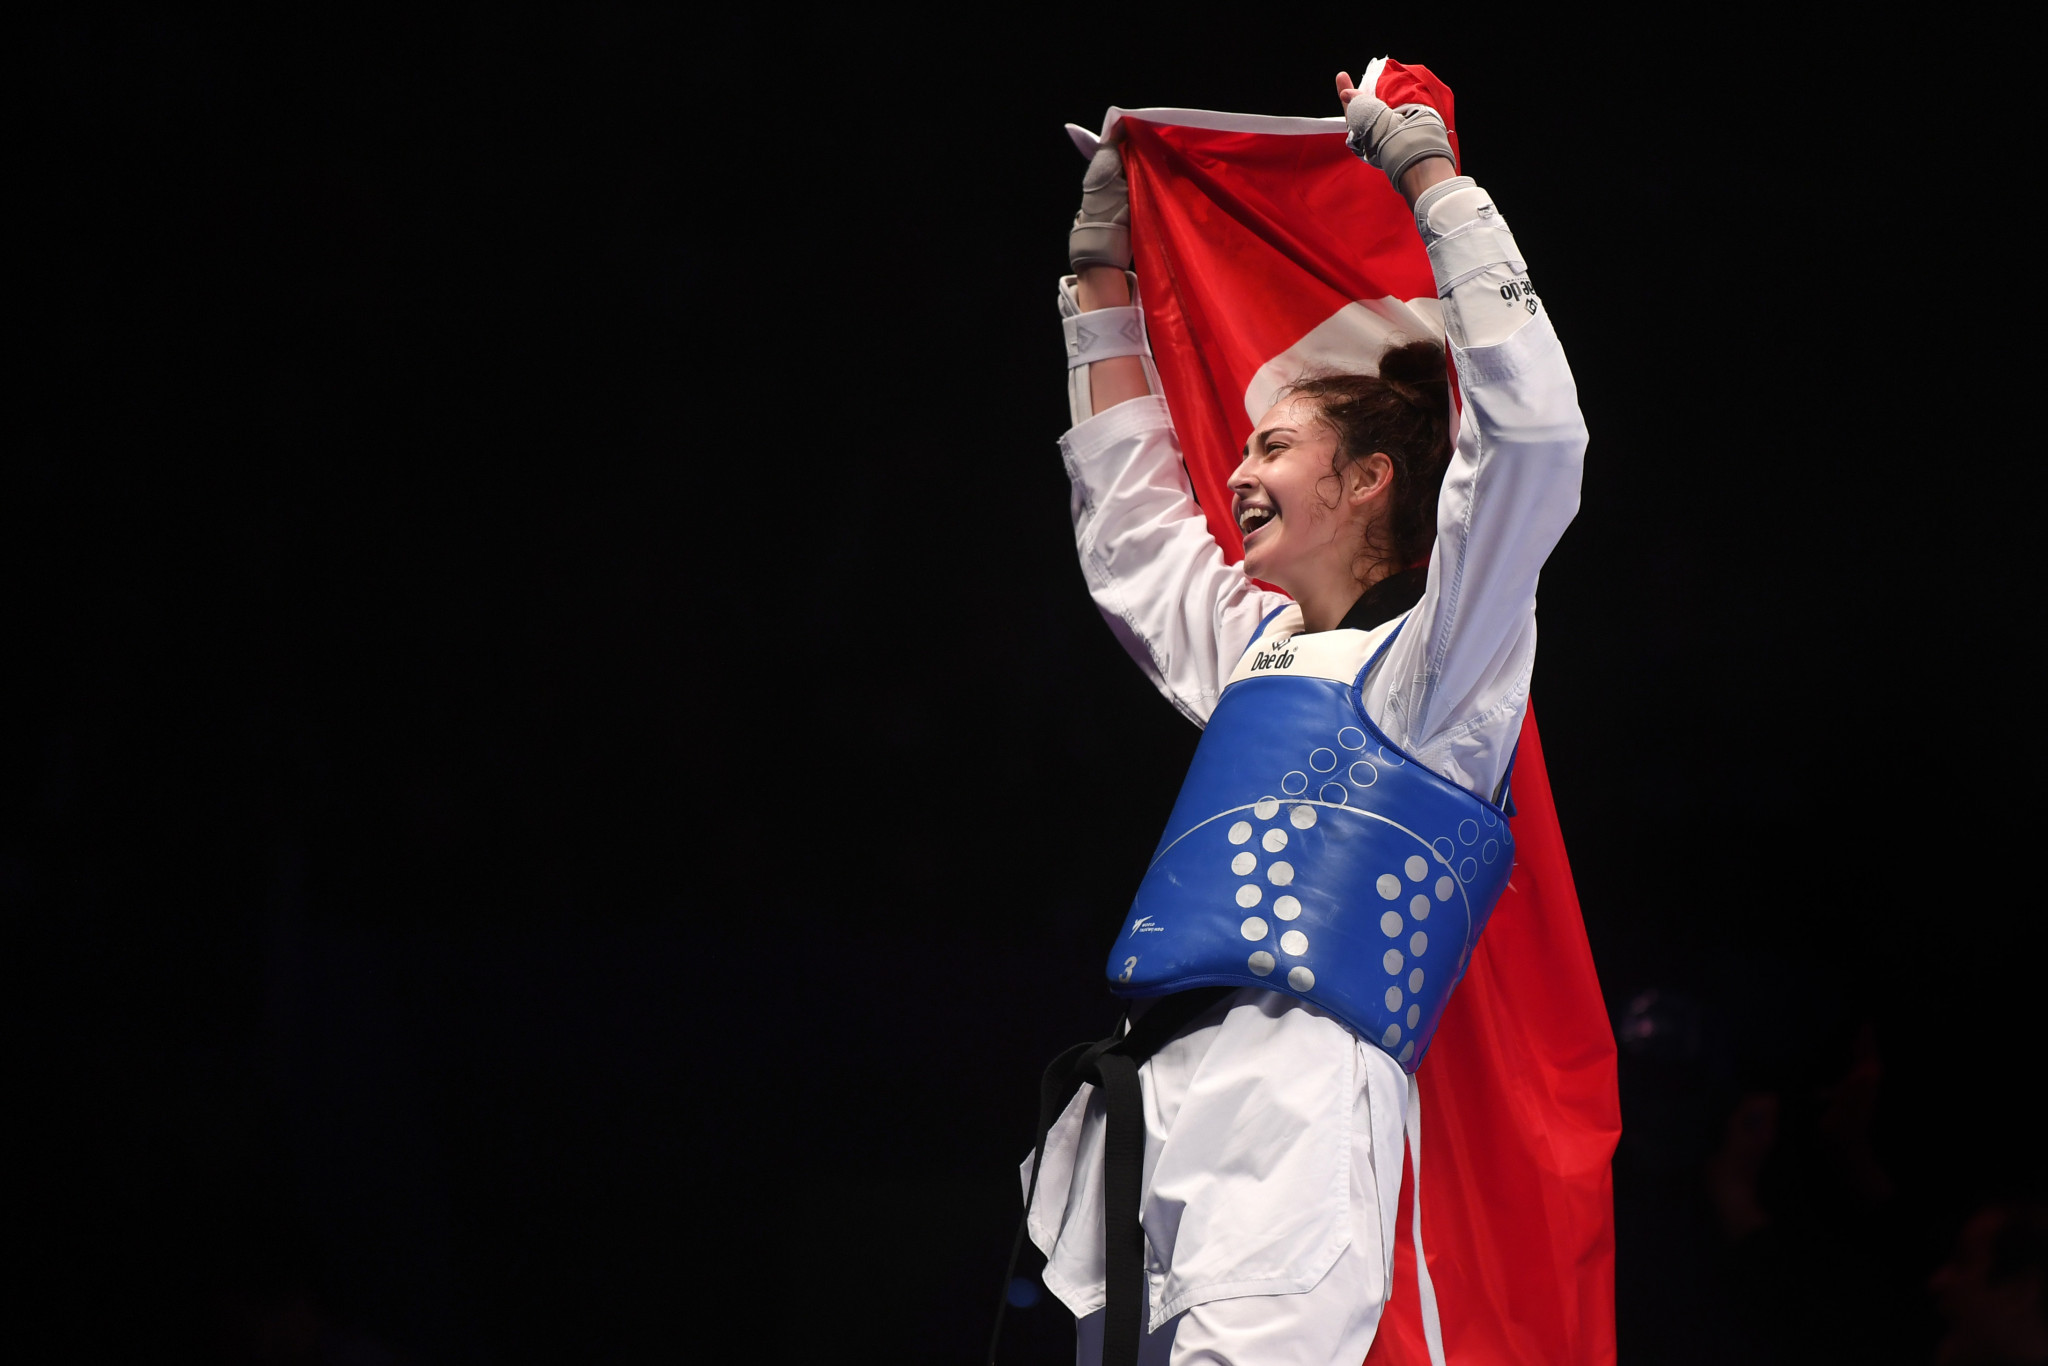 Double Olympic gold medallist Jones defeated at G4 Extra European Taekwondo Championships